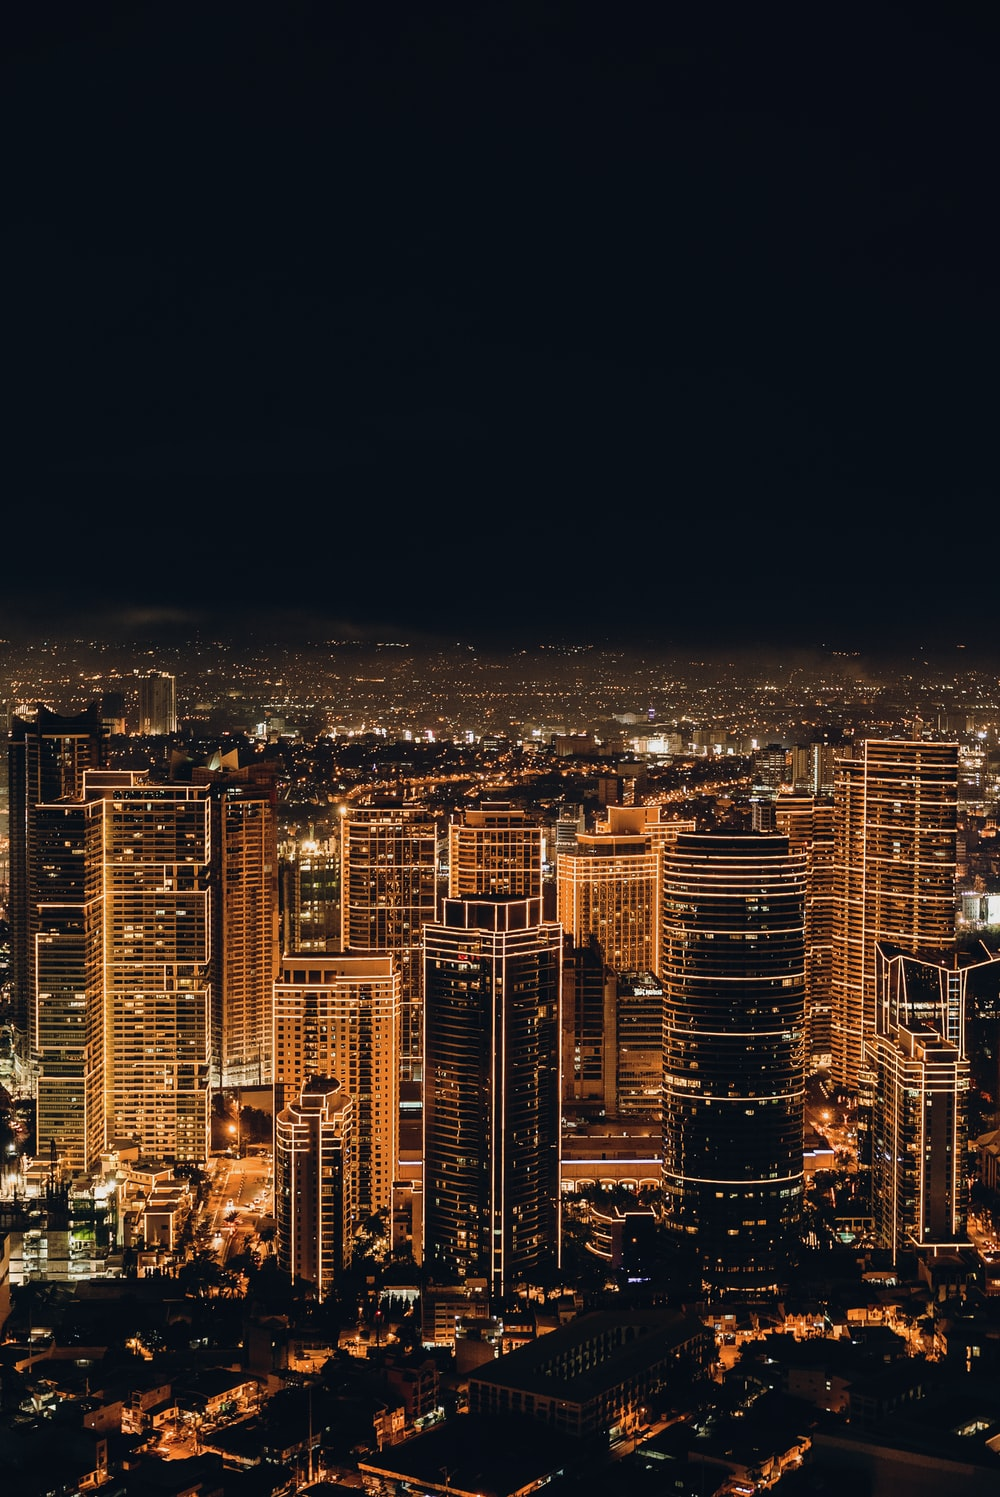 city buildings during night time